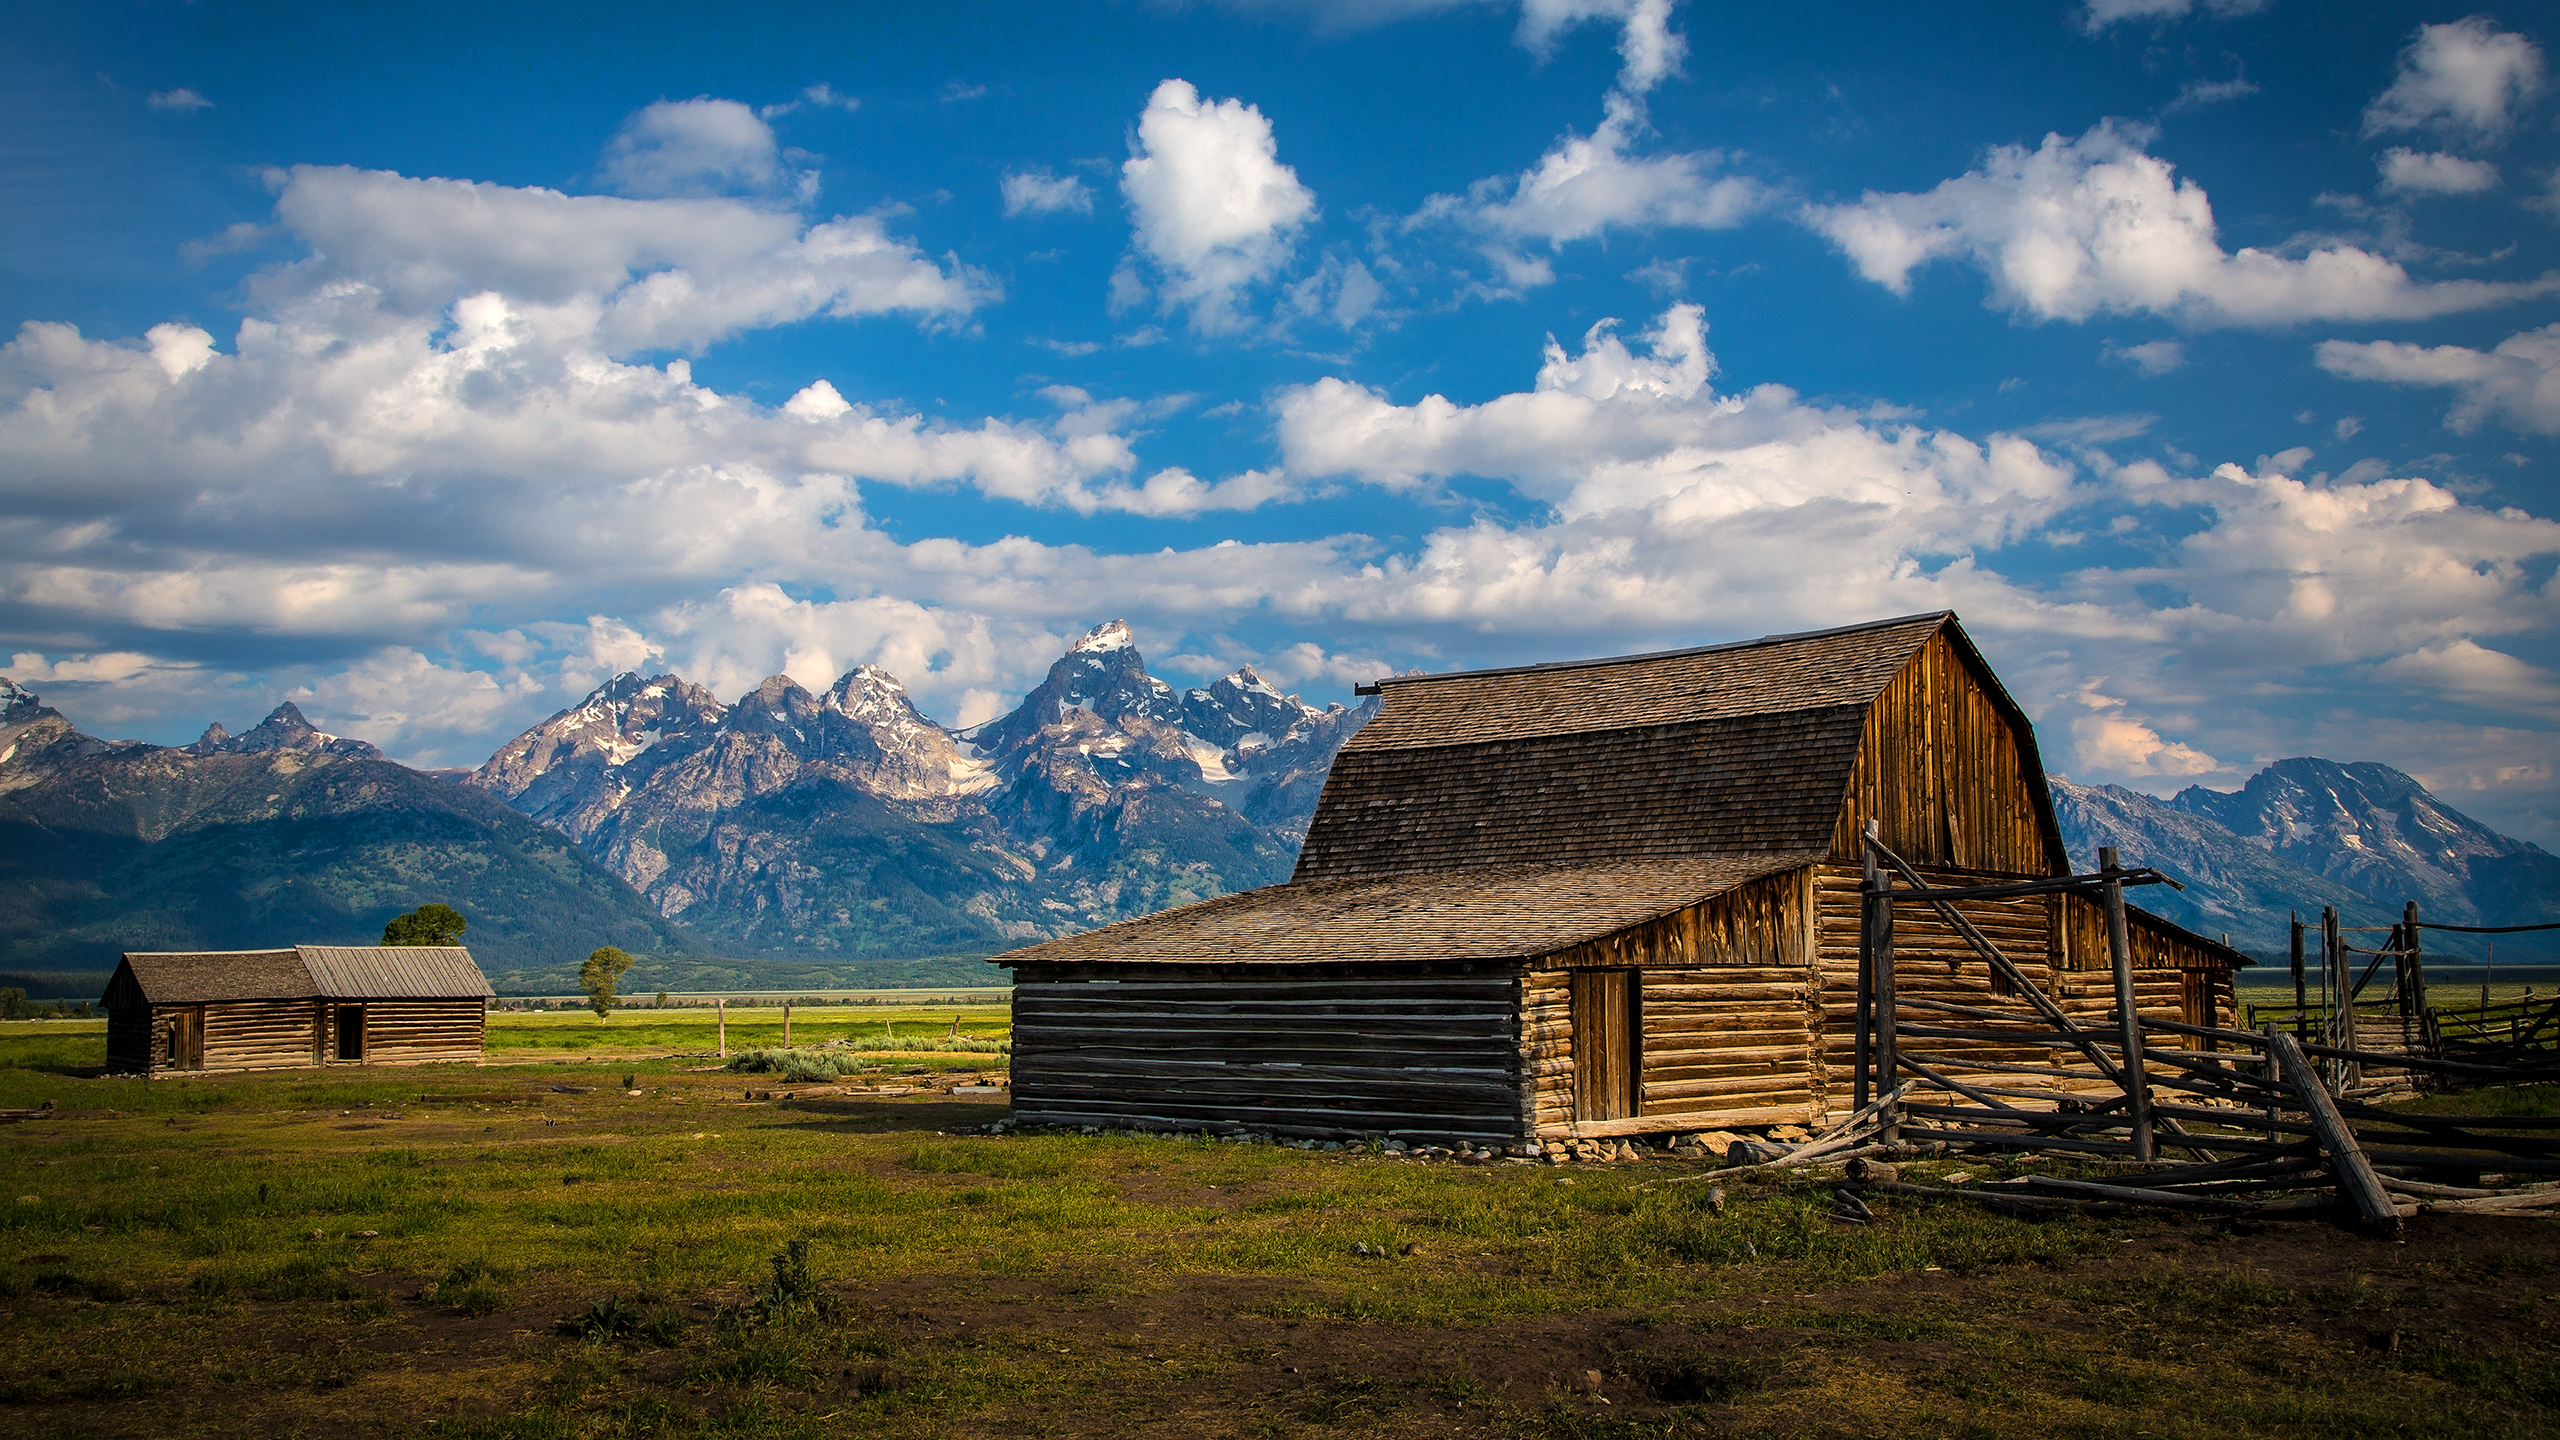 thebarn_wallpaper_2560x1440